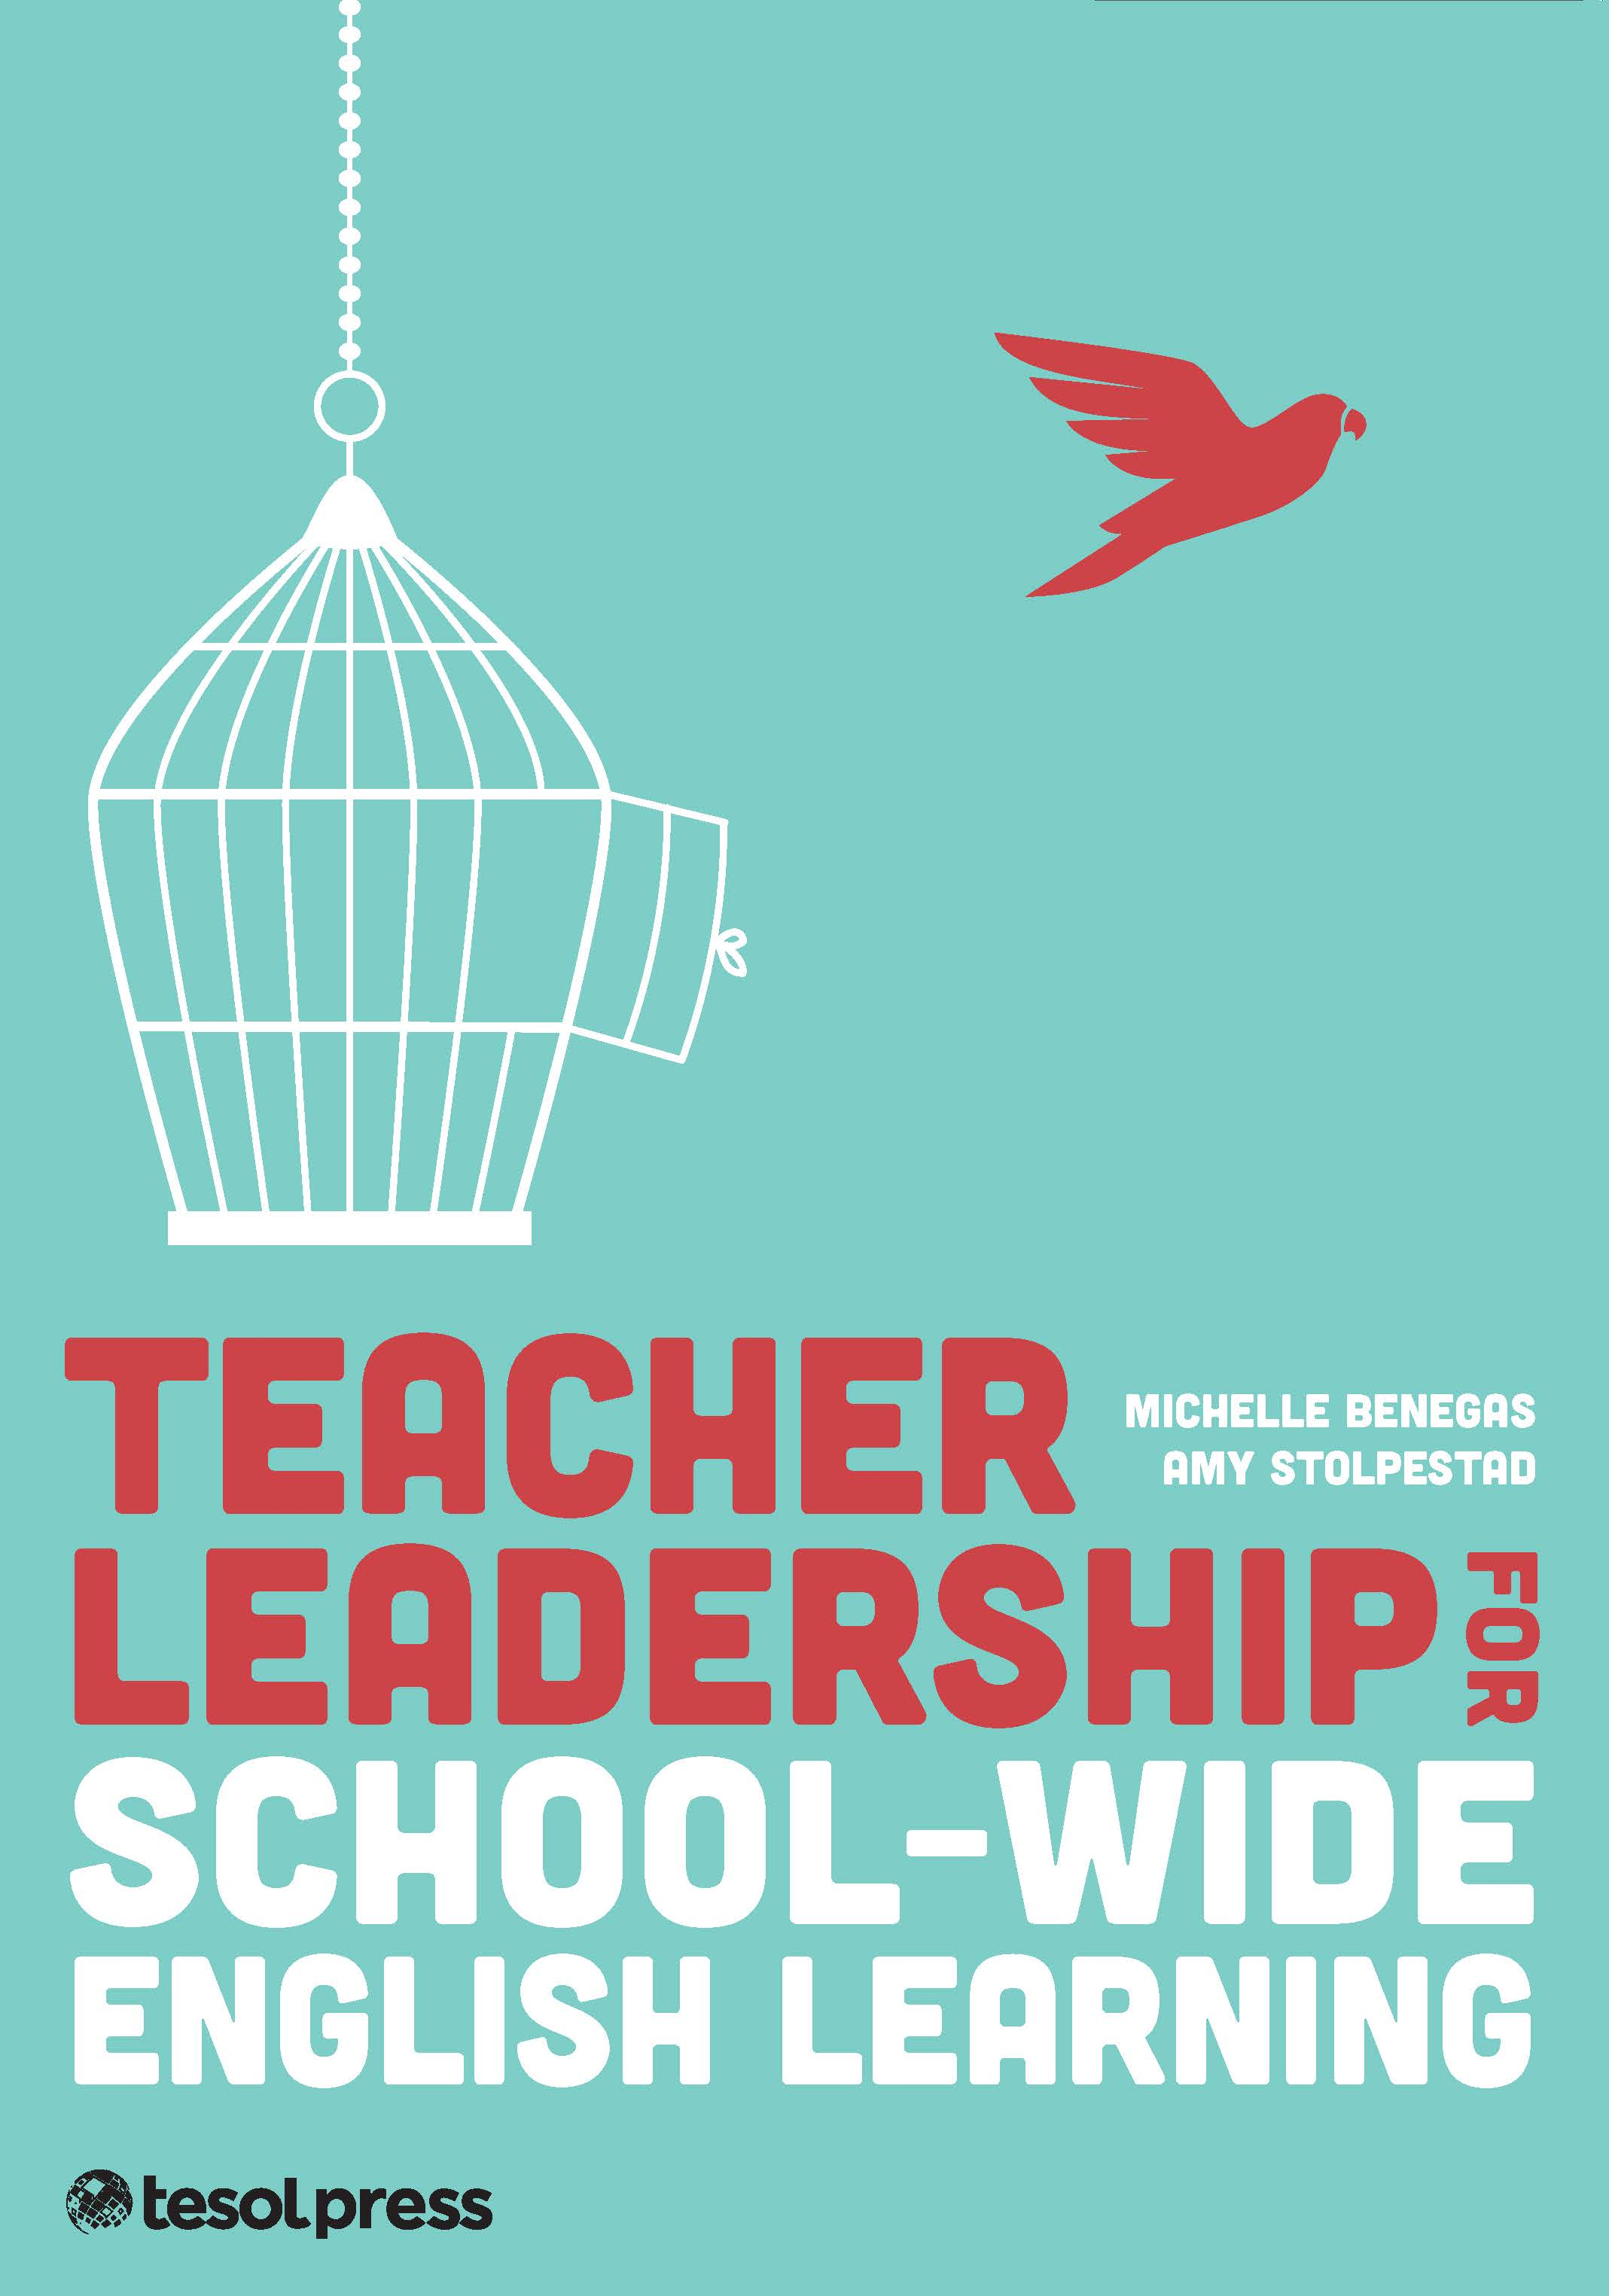 Teacher Leadership for School-Wide English Learning (SWEL) by Michelle Benegas and Amy Stolpestad